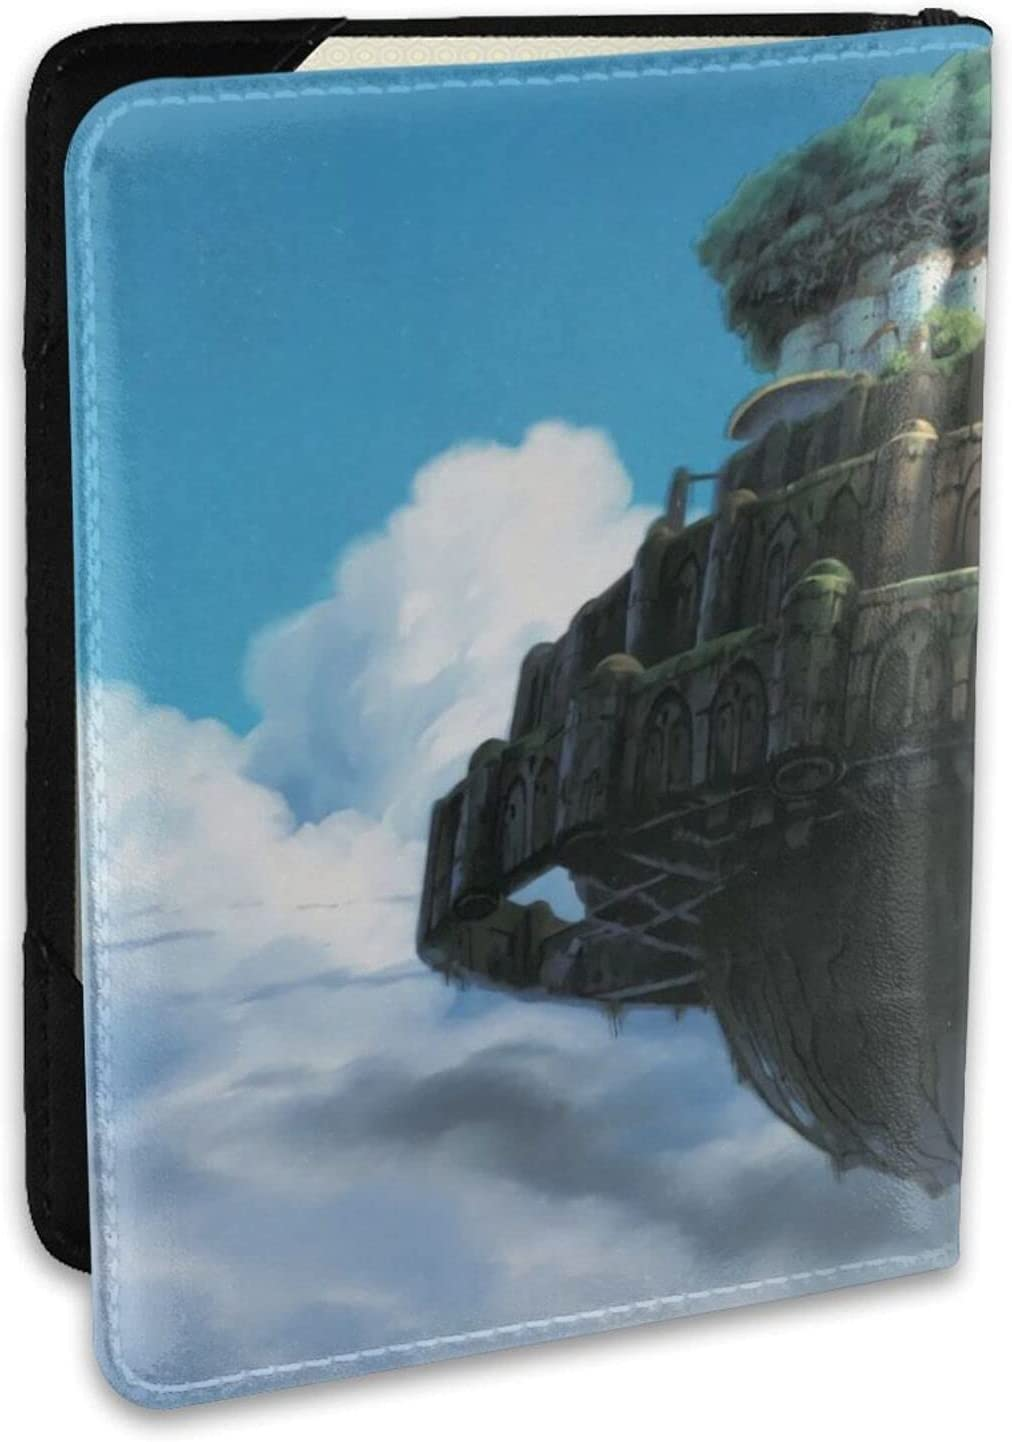 Anime Bargain sale Castle in the Sky leather wallet Max 40% OFF ca Hayao credit Miyazaki